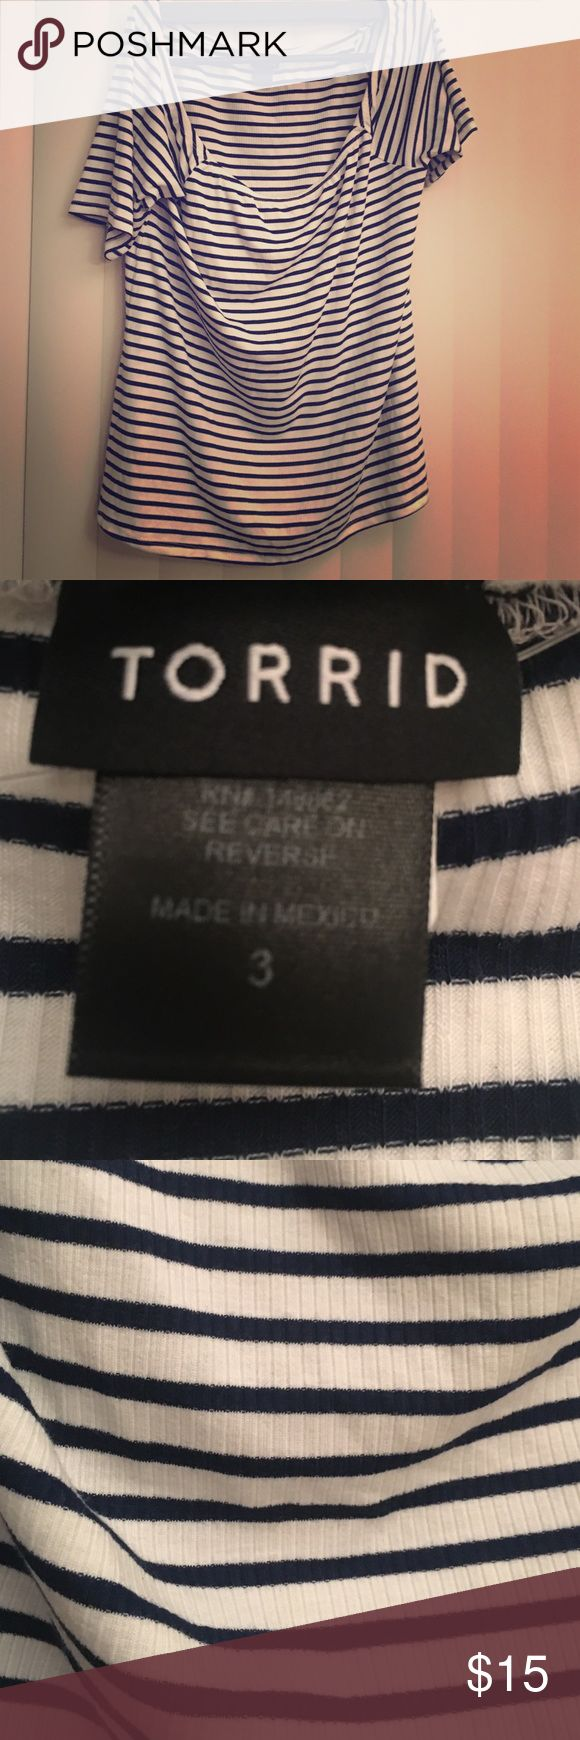 Torrid off the shoulder striped top Stretchy Bardot-neck top with 3/4 sleeves and navy stripes. Runs a little small imo; best for a 20 or small 22. Never worn. torrid Tops Tees - Long Sleeve